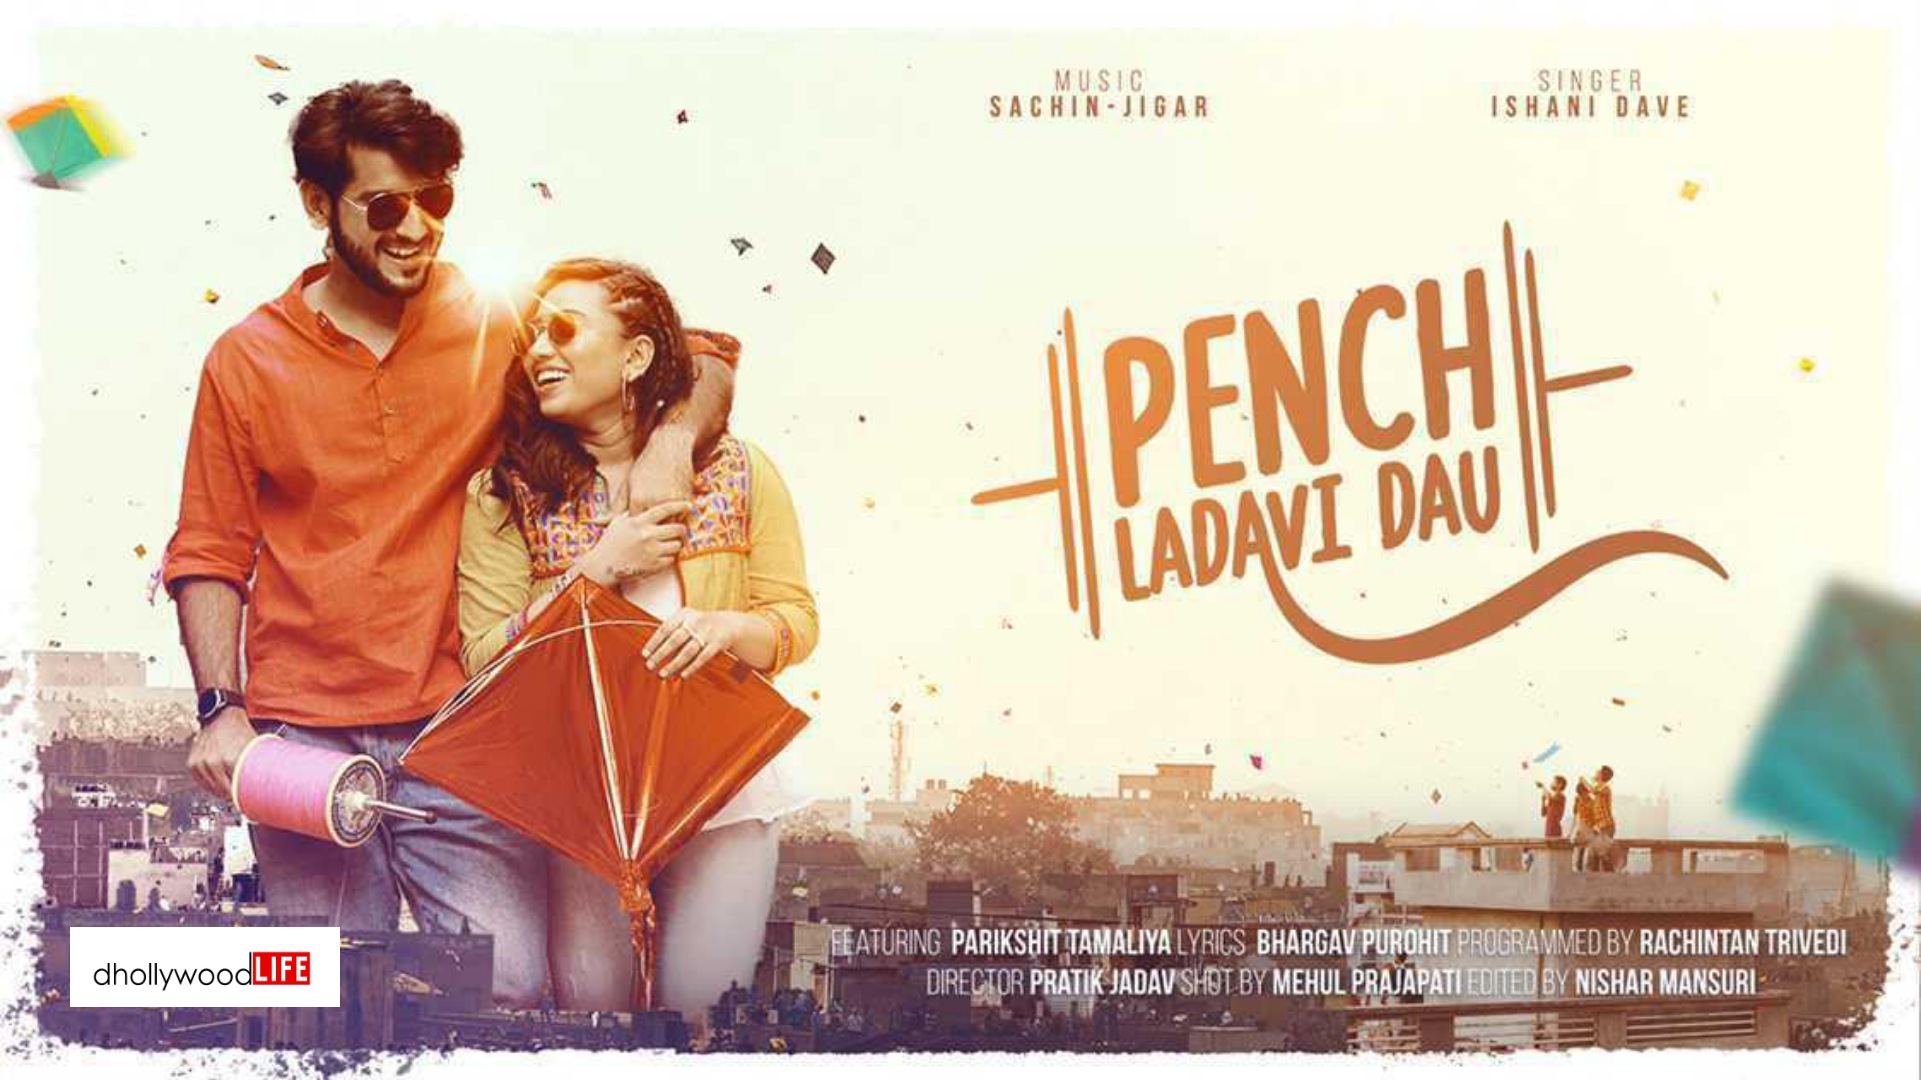 Ishani Dave's 'Pench Ladavi Dau' is finally out, Check here!